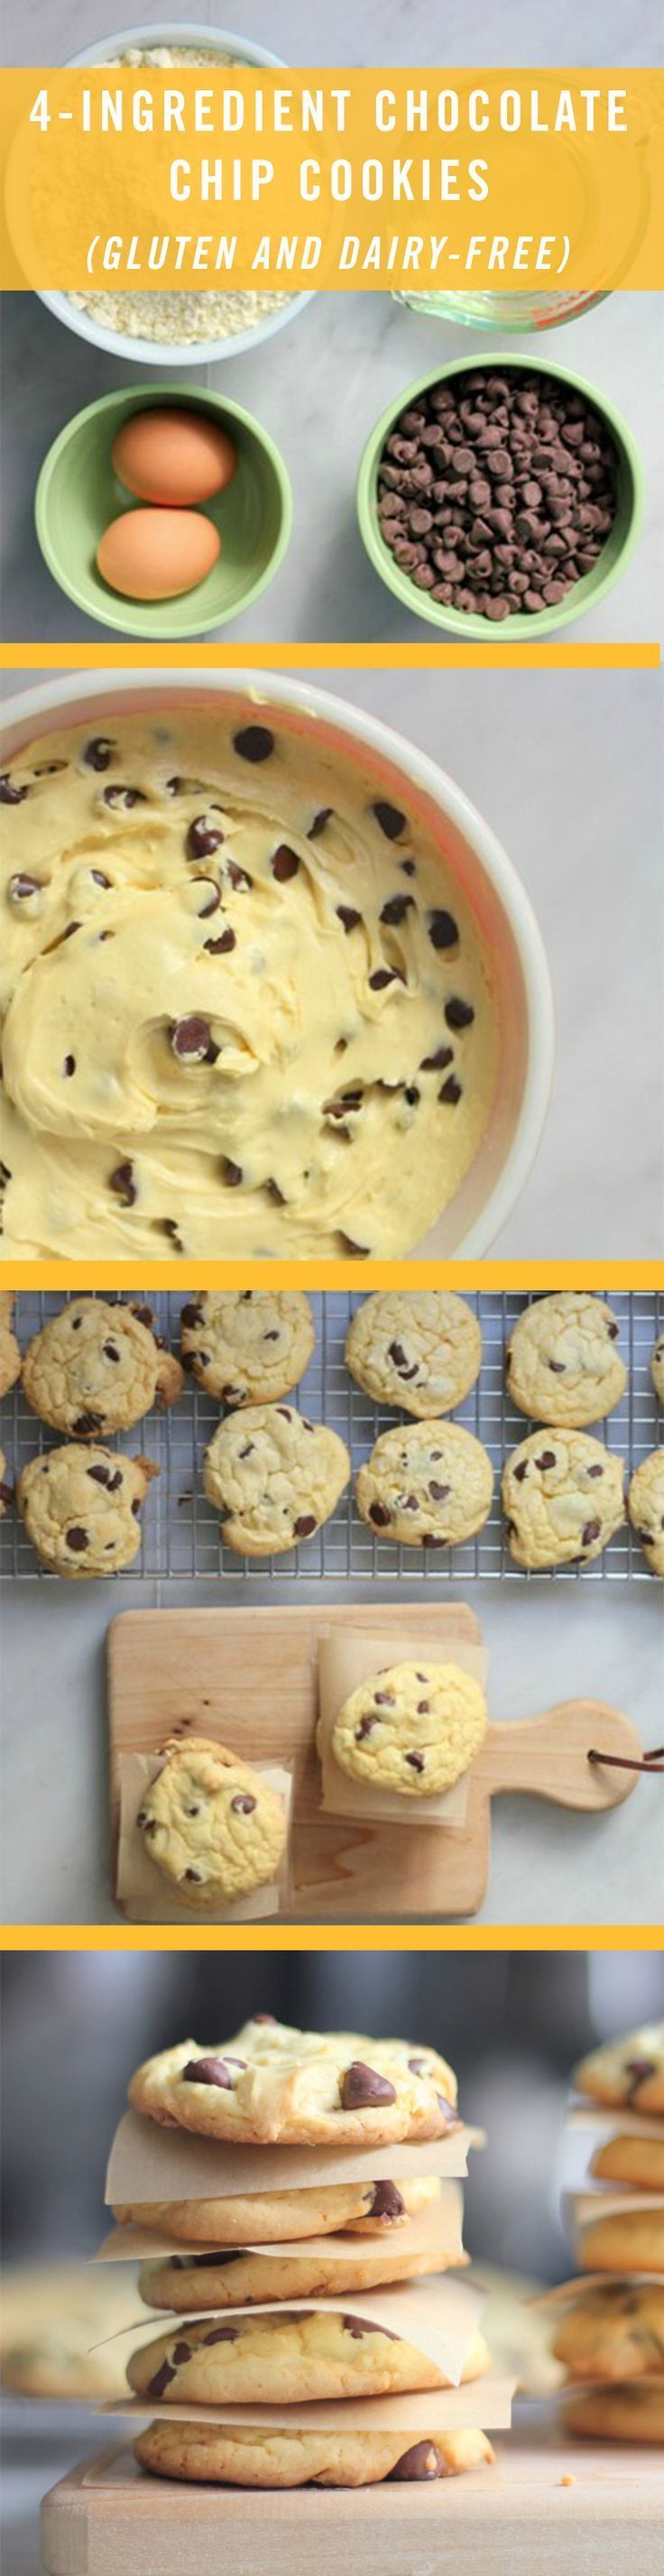 Living gluten-free doesn't mean we have to sacrifice our favorite treats. Chocolate Chip Cookies are for everyone! This recipe only requires 4 ingredients, is easy to follow, and is both gluten and dairy free. What more could we ask for? All you need is y